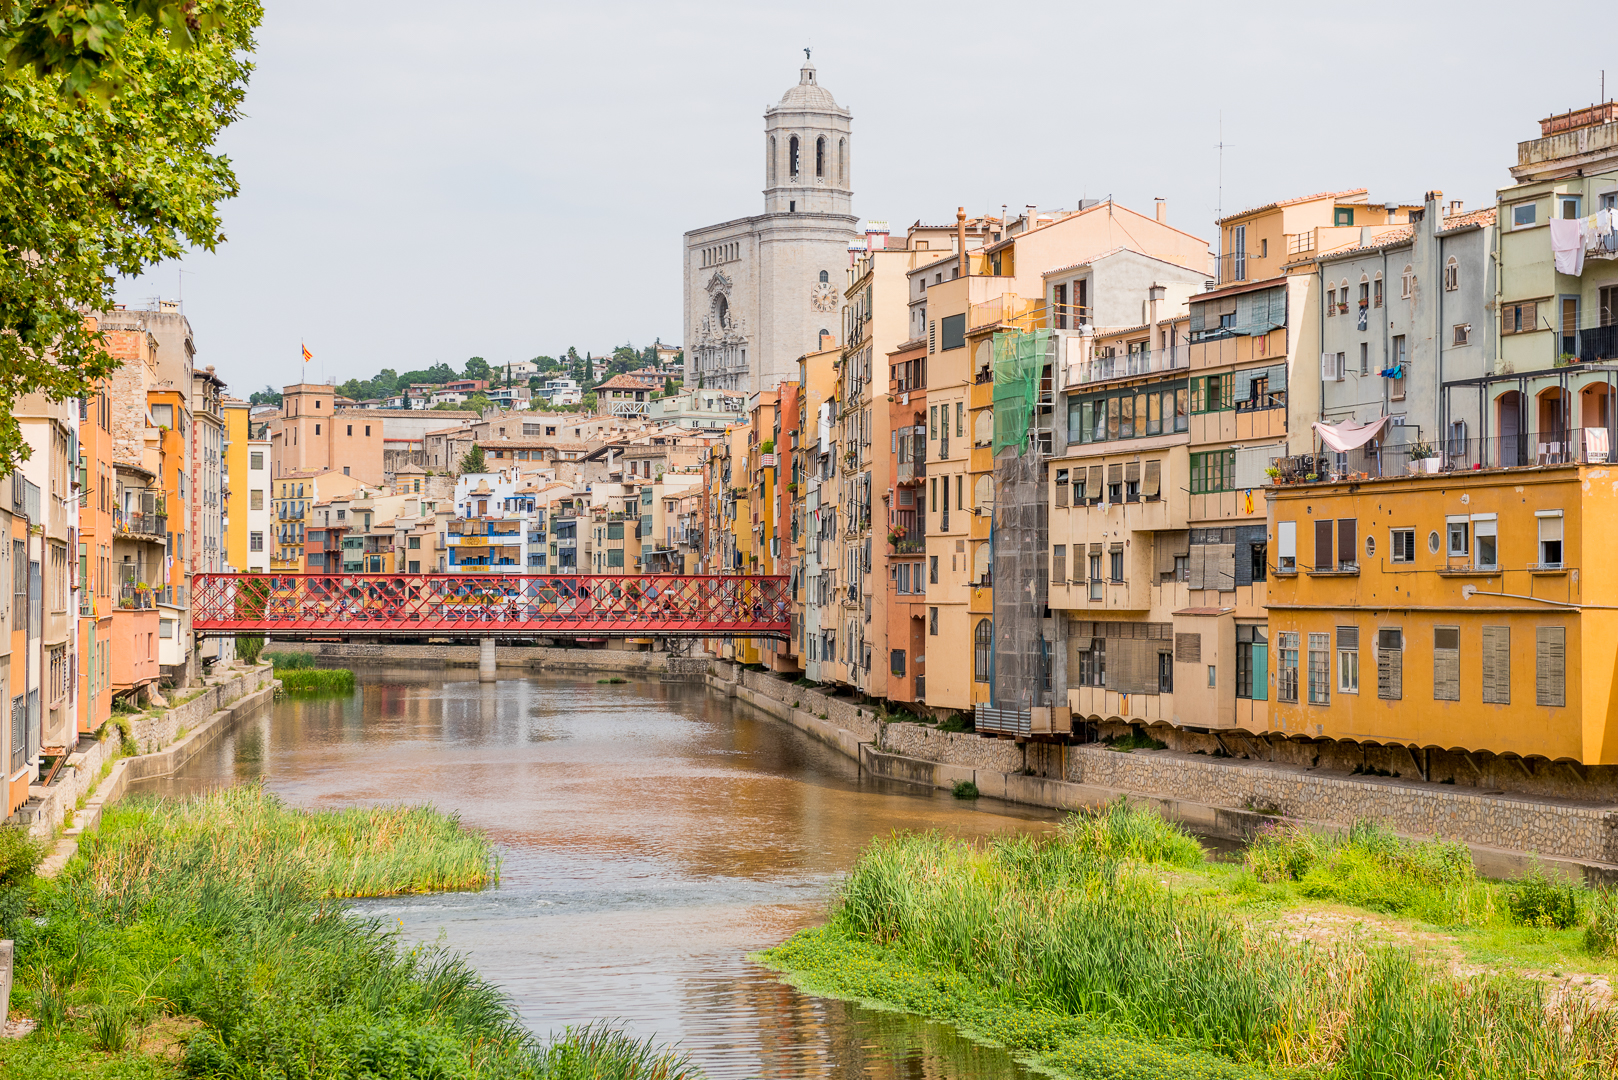 View of the Riu Onyar in Girona. Photo by Tobias Wang.